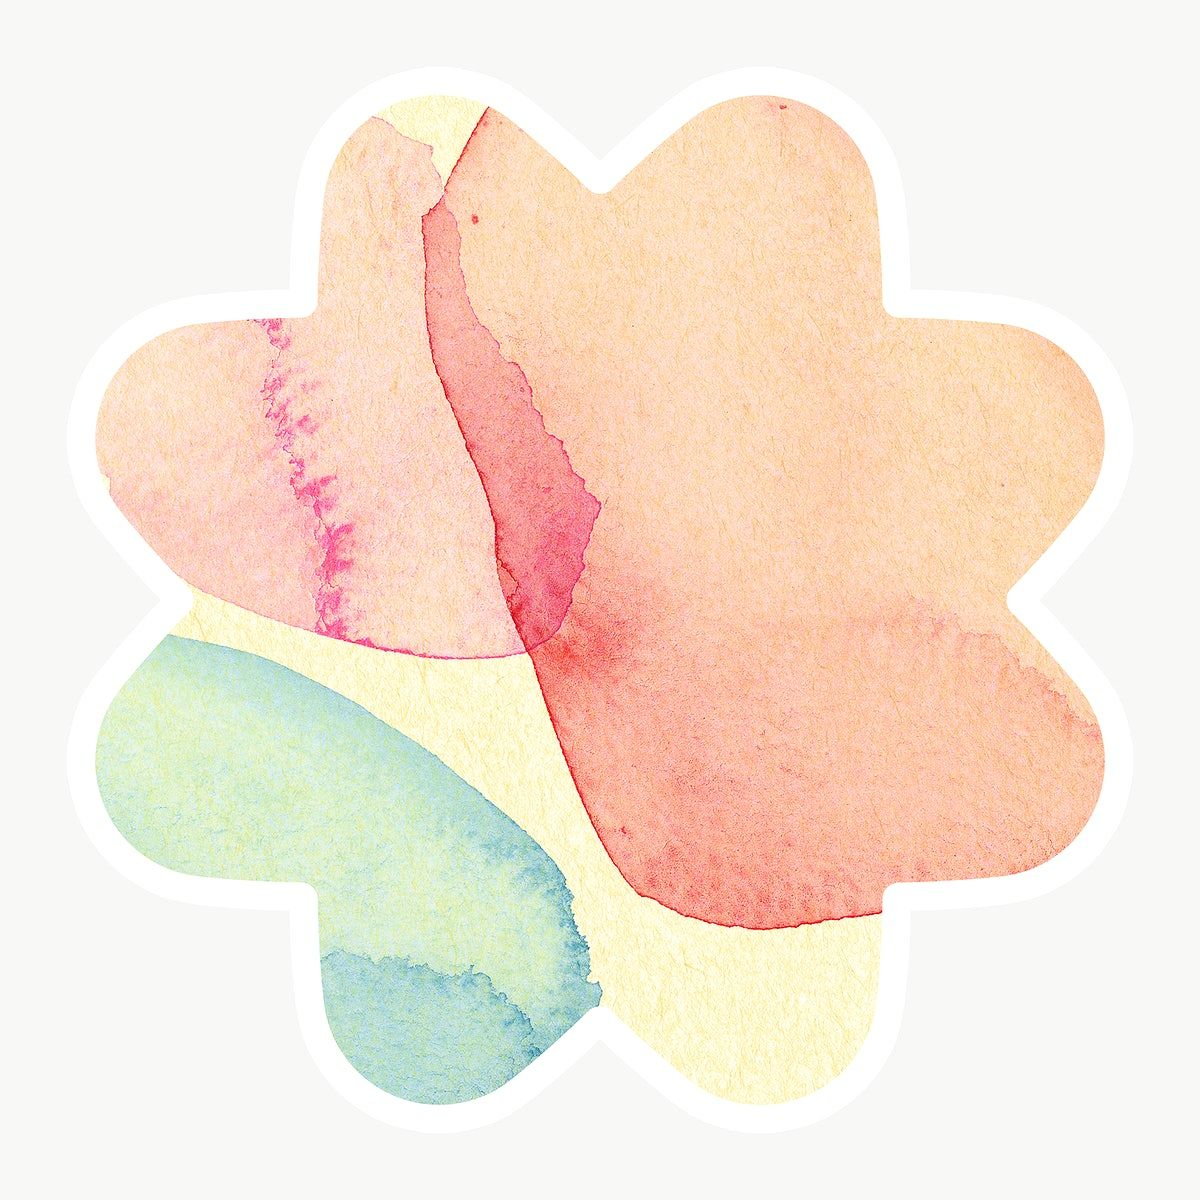 Colorful Flower Shaped Badge Design Element Free Image By Rawpixel Com Wan Watercolor Flowers Pattern Badge Design Vector Flowers